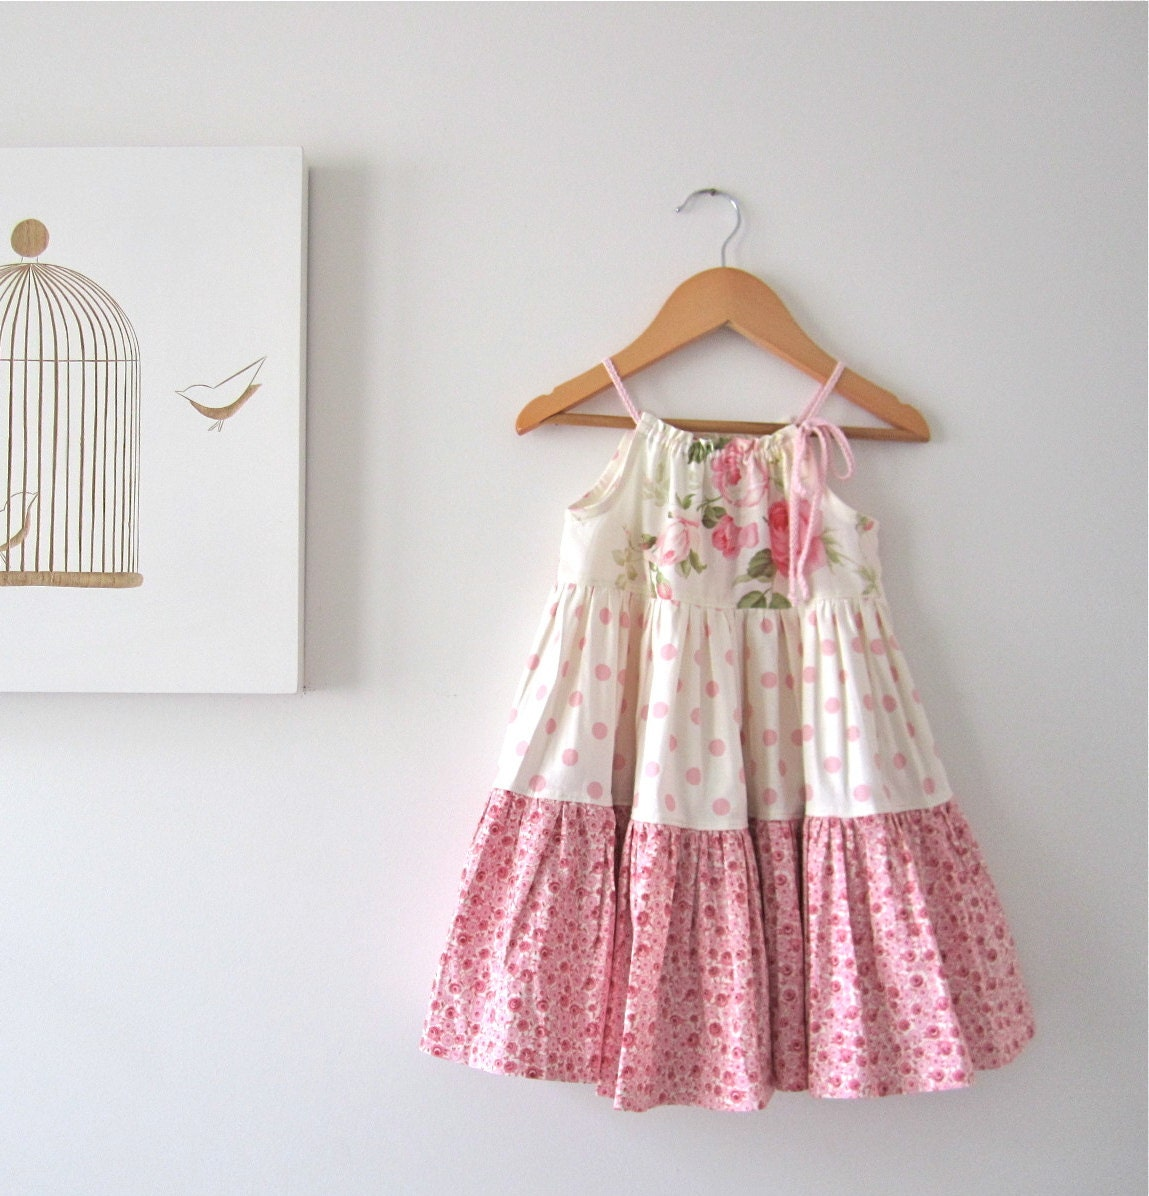 Find great deals on eBay for Baby Cotton Dress in Baby Girls' Dresses (Newborn-5T). Shop with confidence.